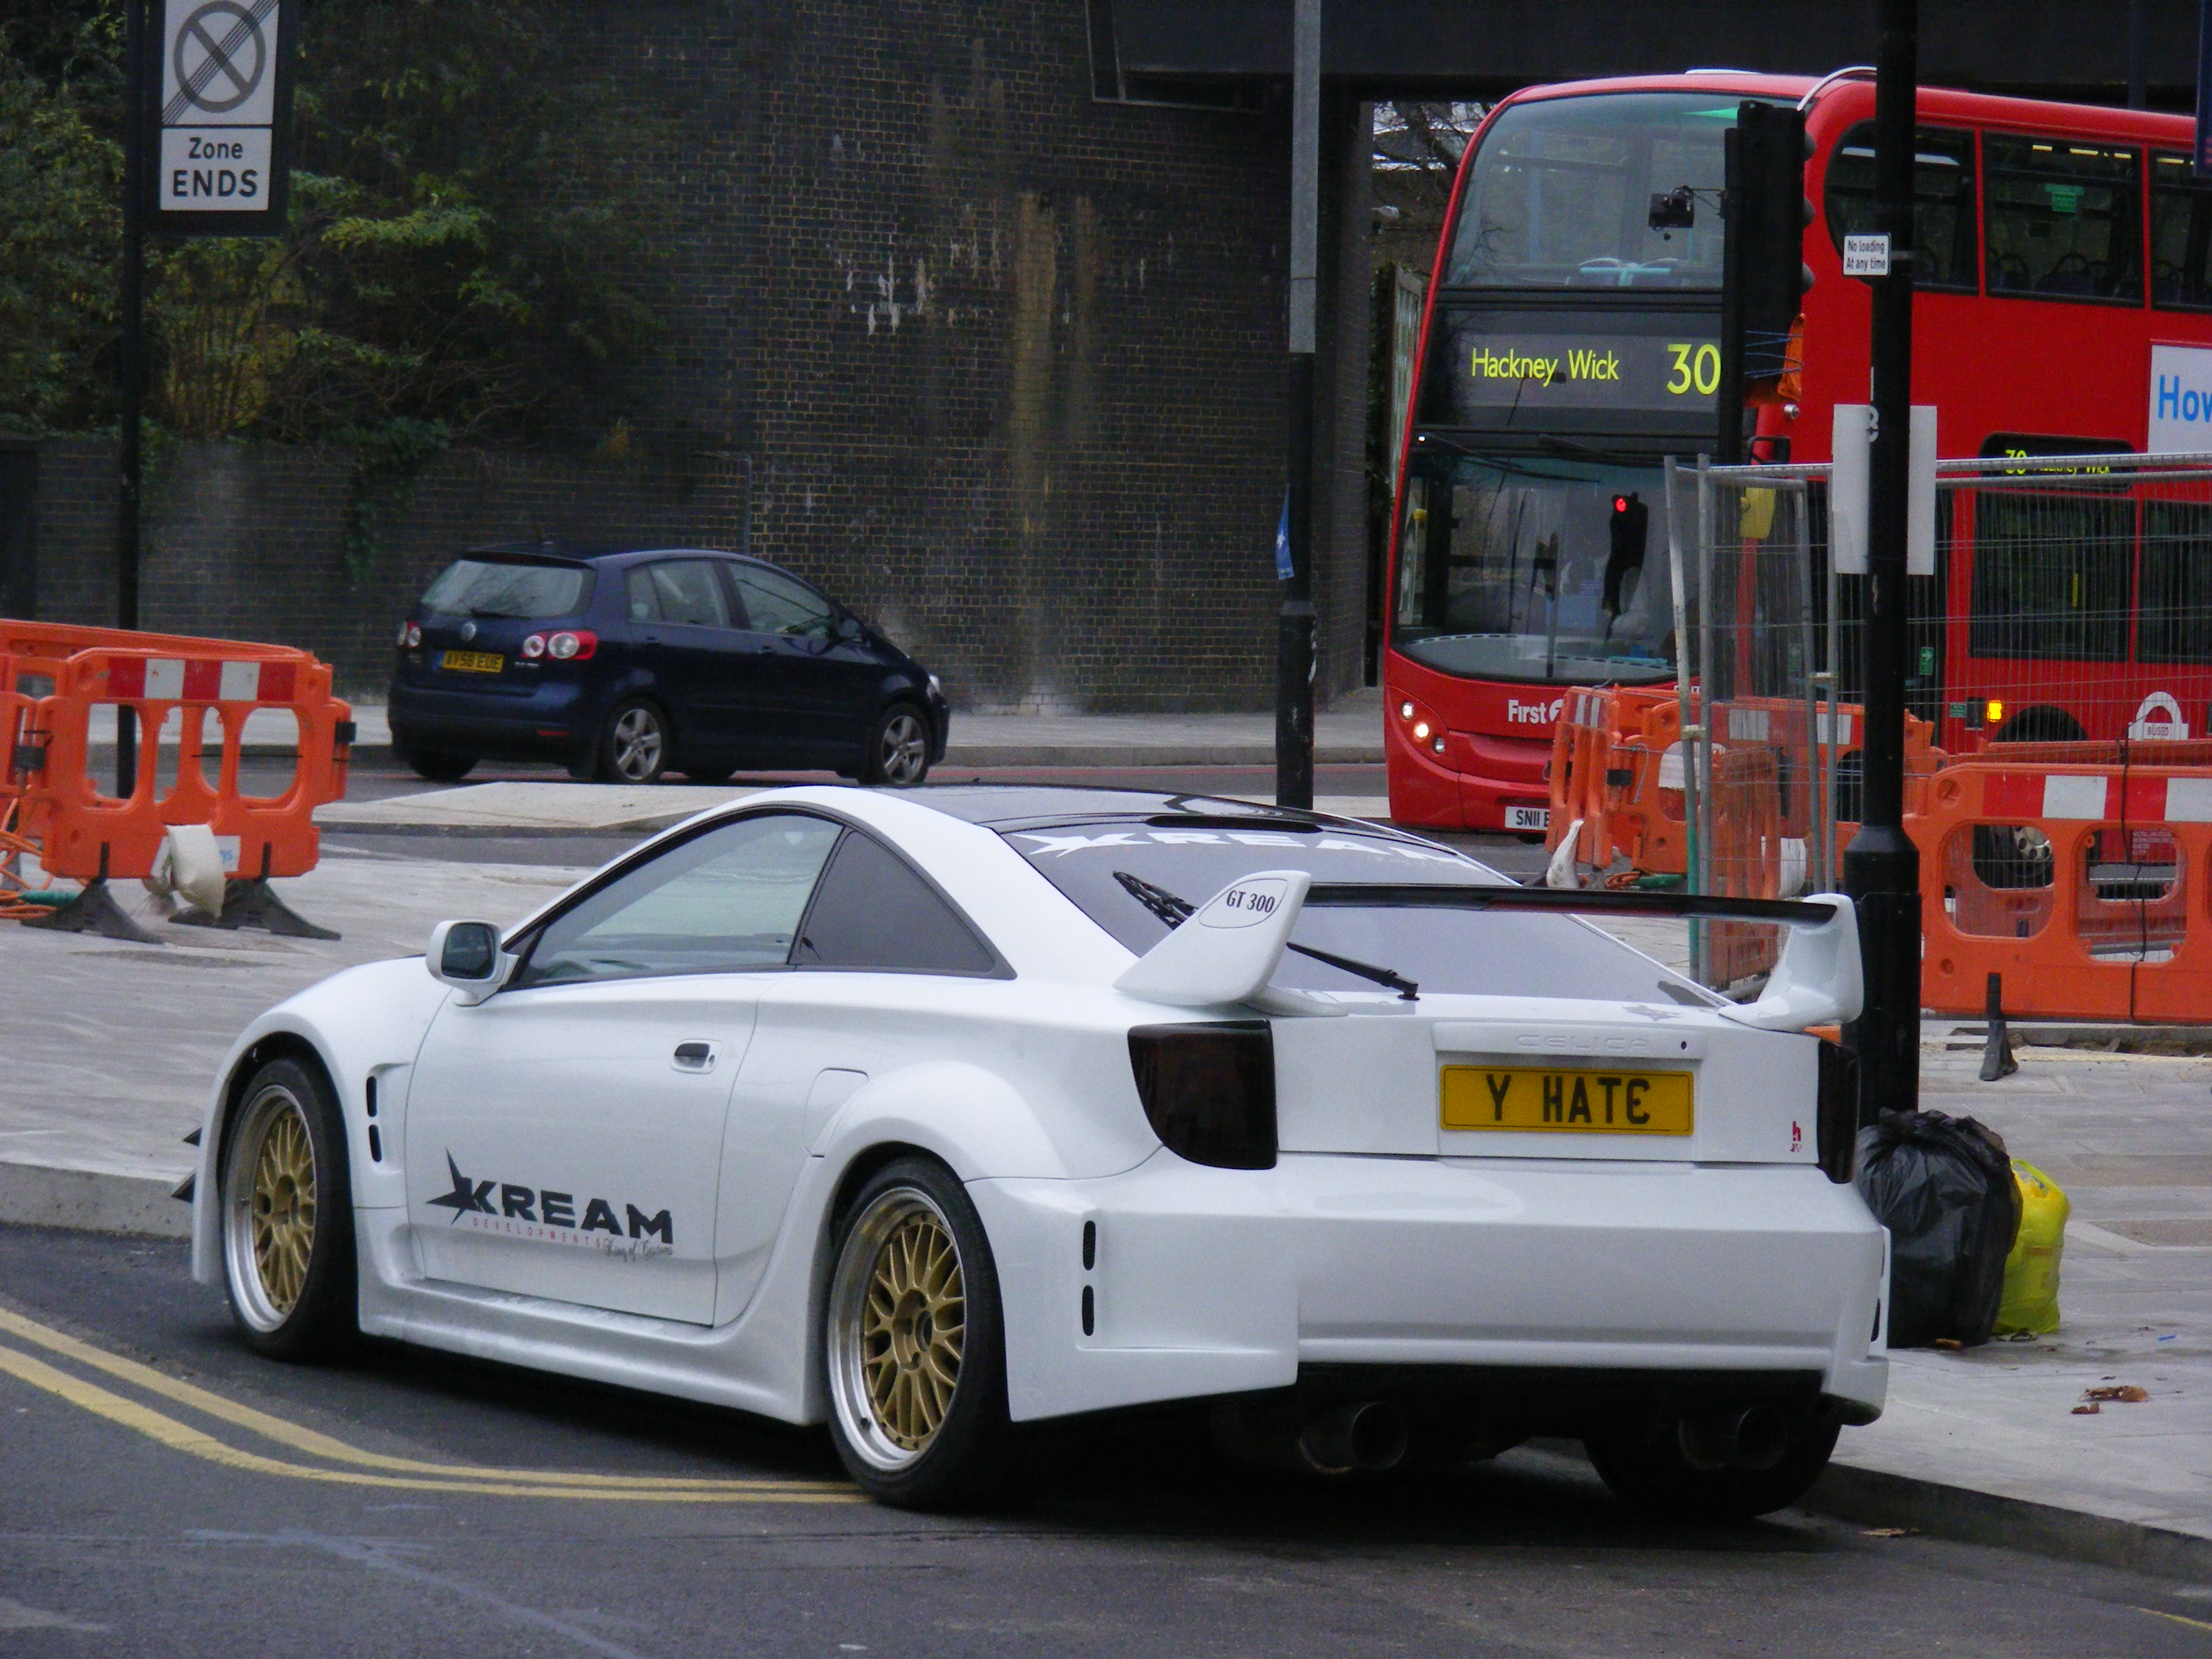 Toyota_Celica_1.8_VVT-i_Rear_in_East_Lon